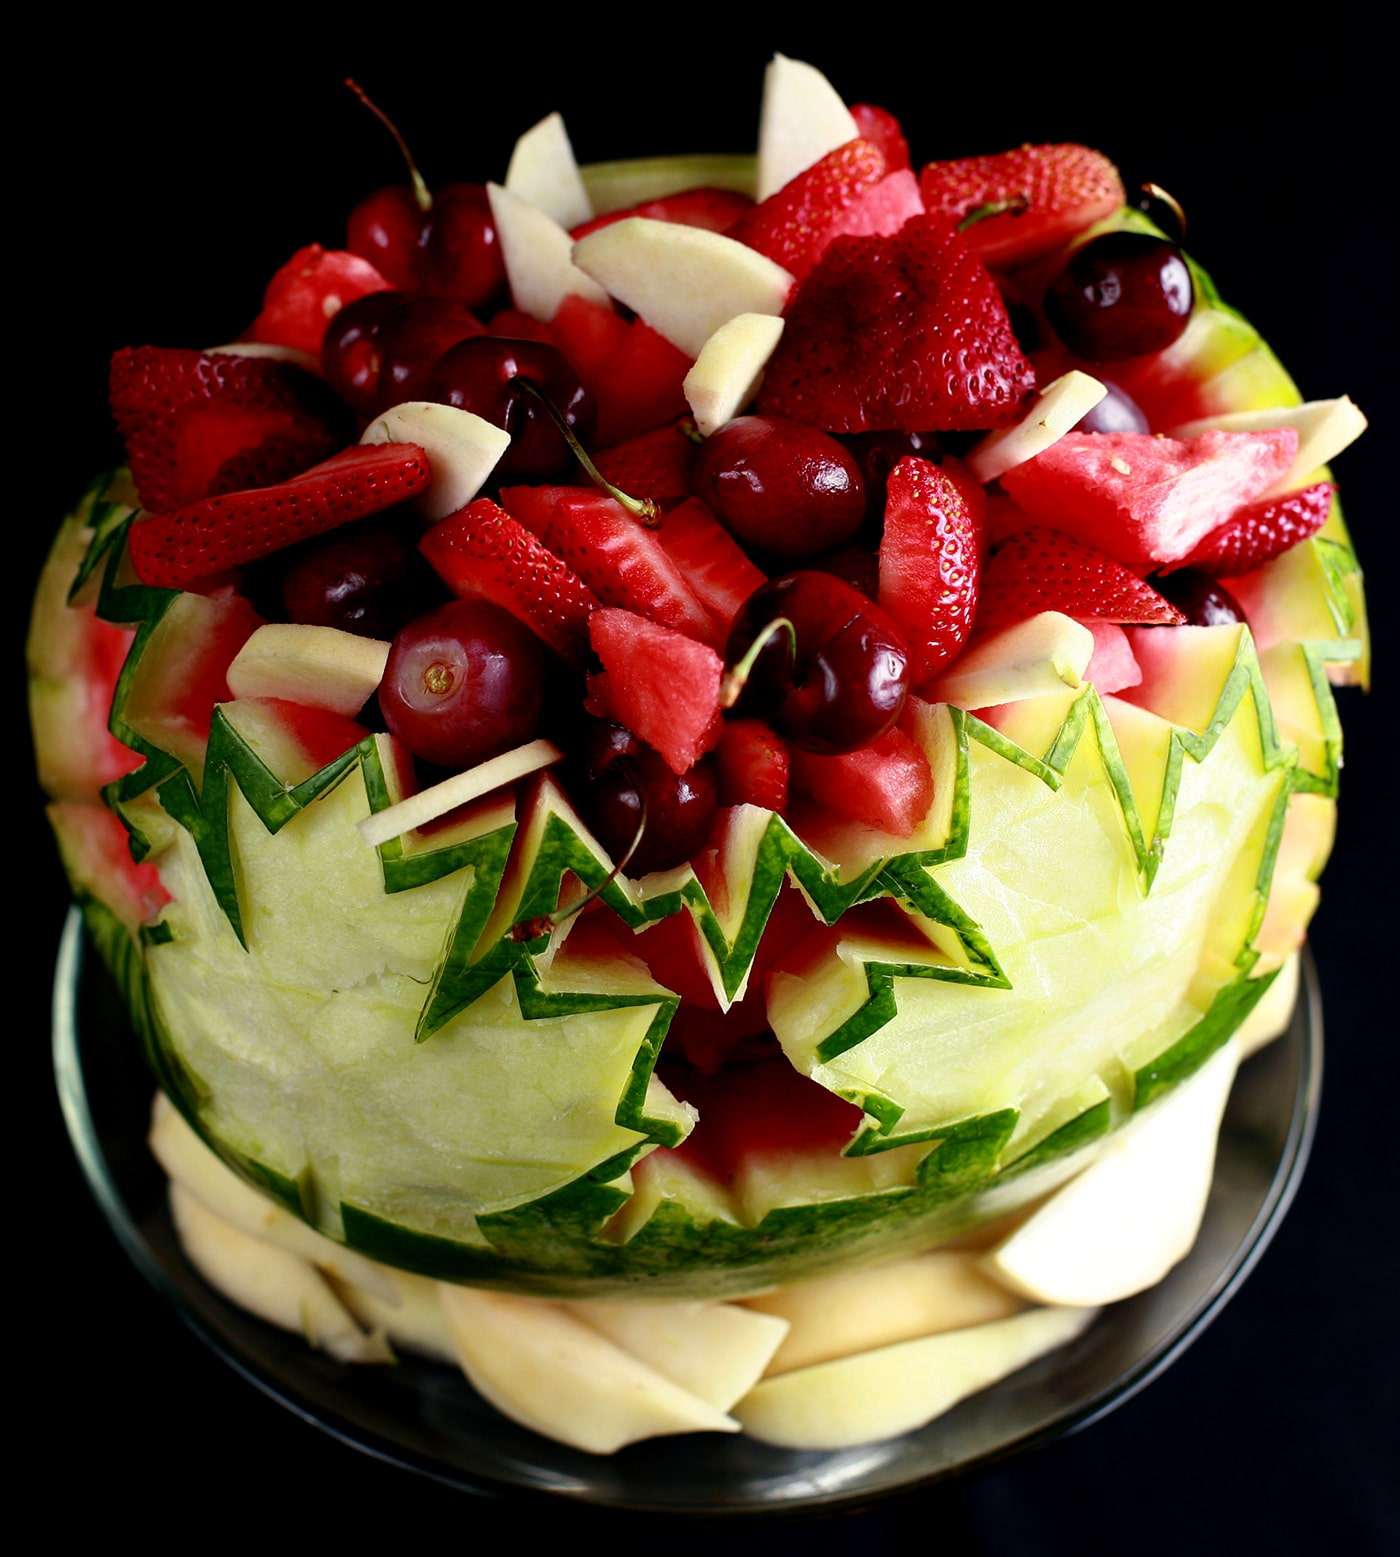 A Canada Day, Canadian Themed Watermelon Bowl. White and red maple leaves are carved into the watermelon, which is filled with red and white fruit.